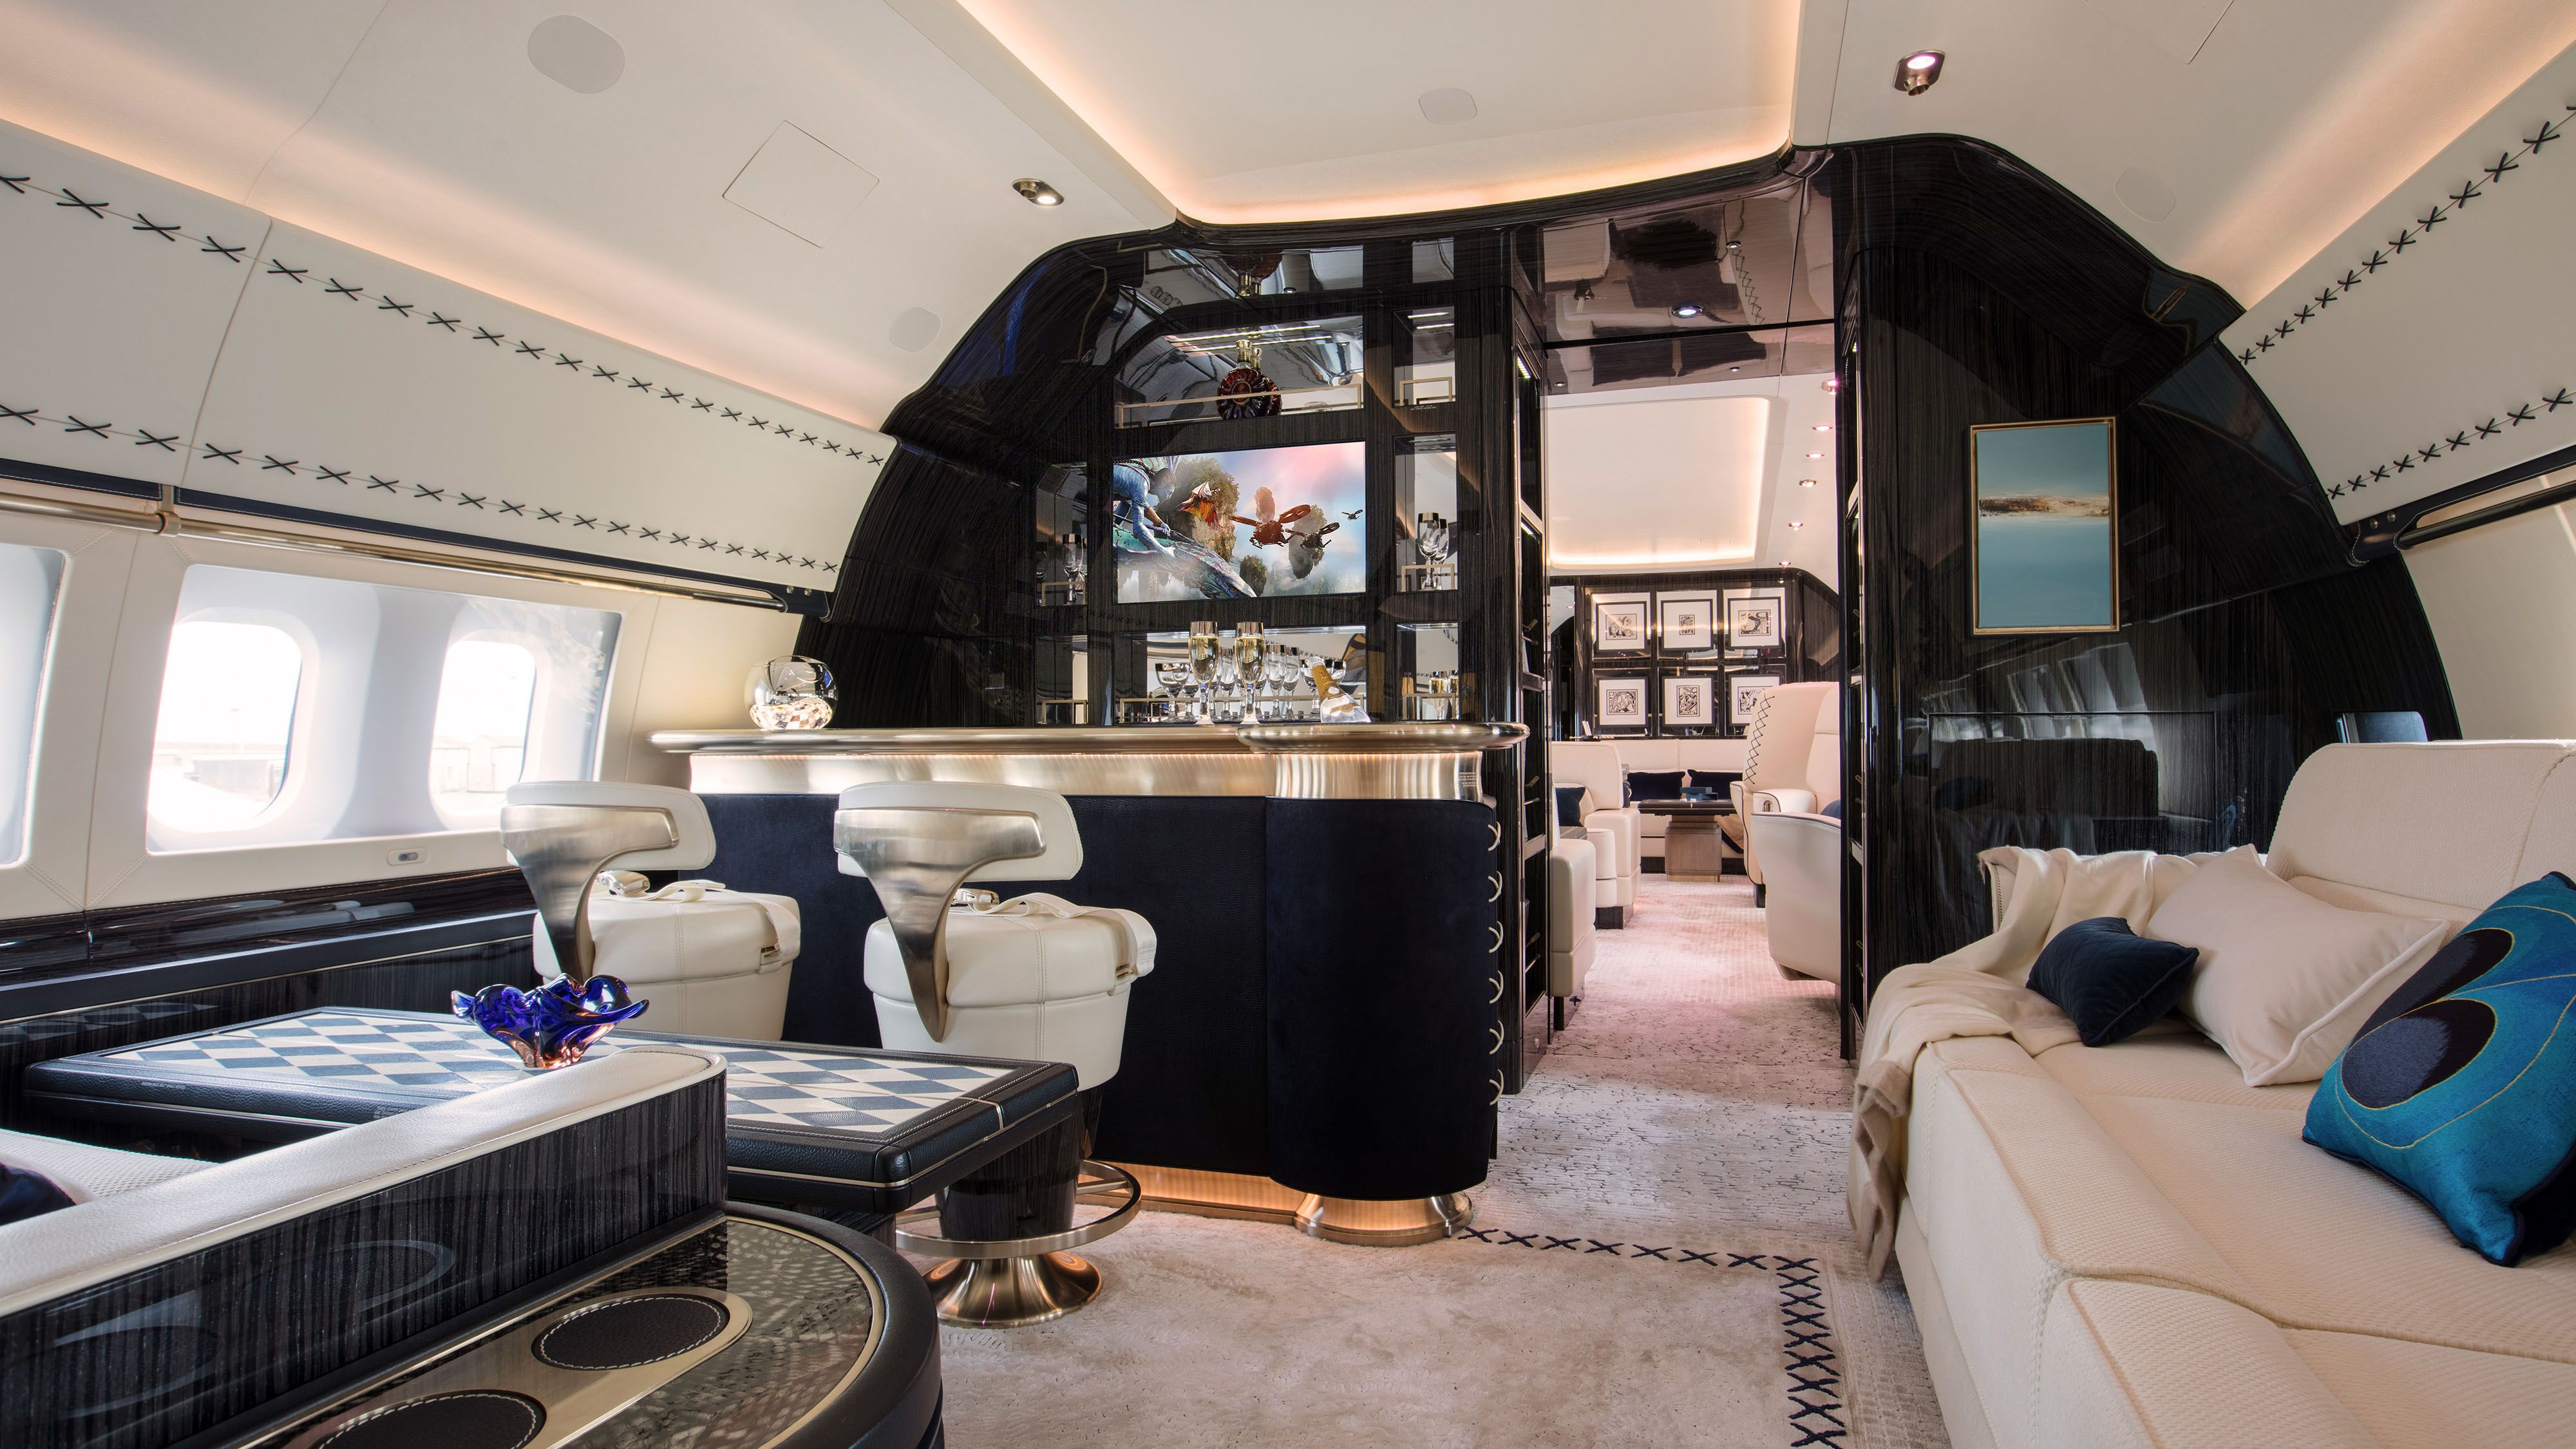 3 D Printing Technology Robb Report Private Jet Interior Luxury Private Jets Private Jet